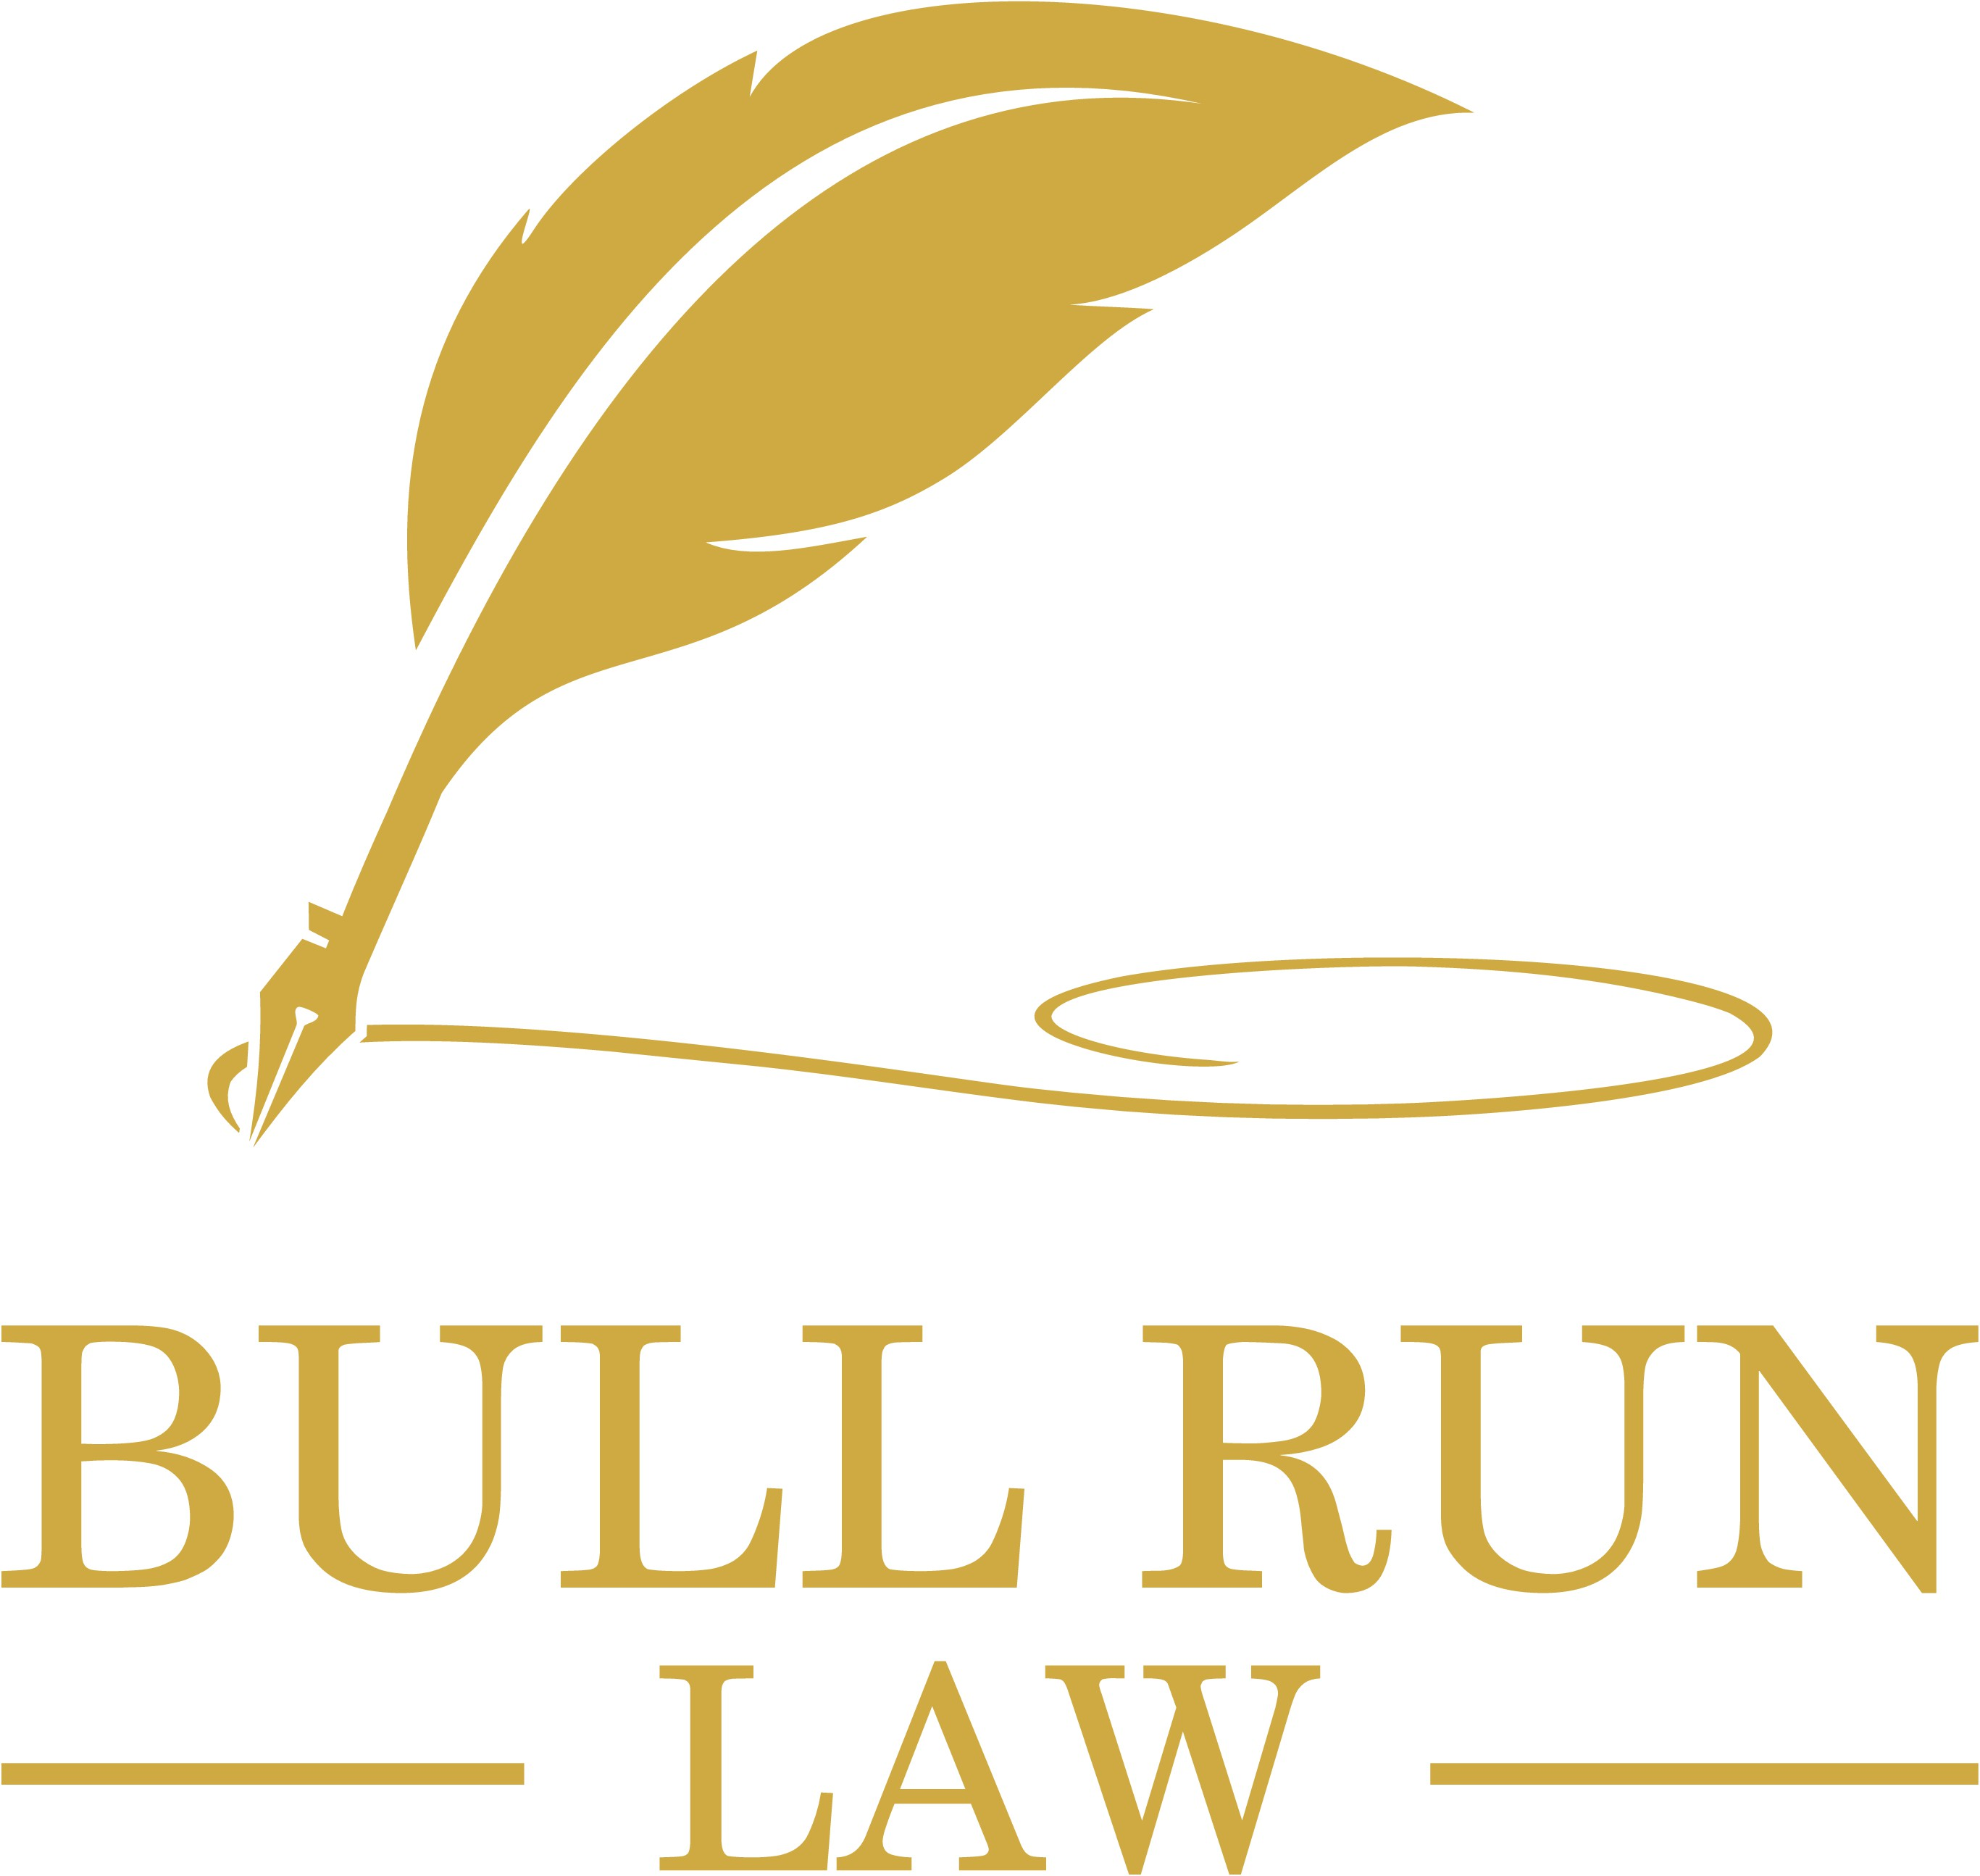 Start-up law firm needs exciting logo!